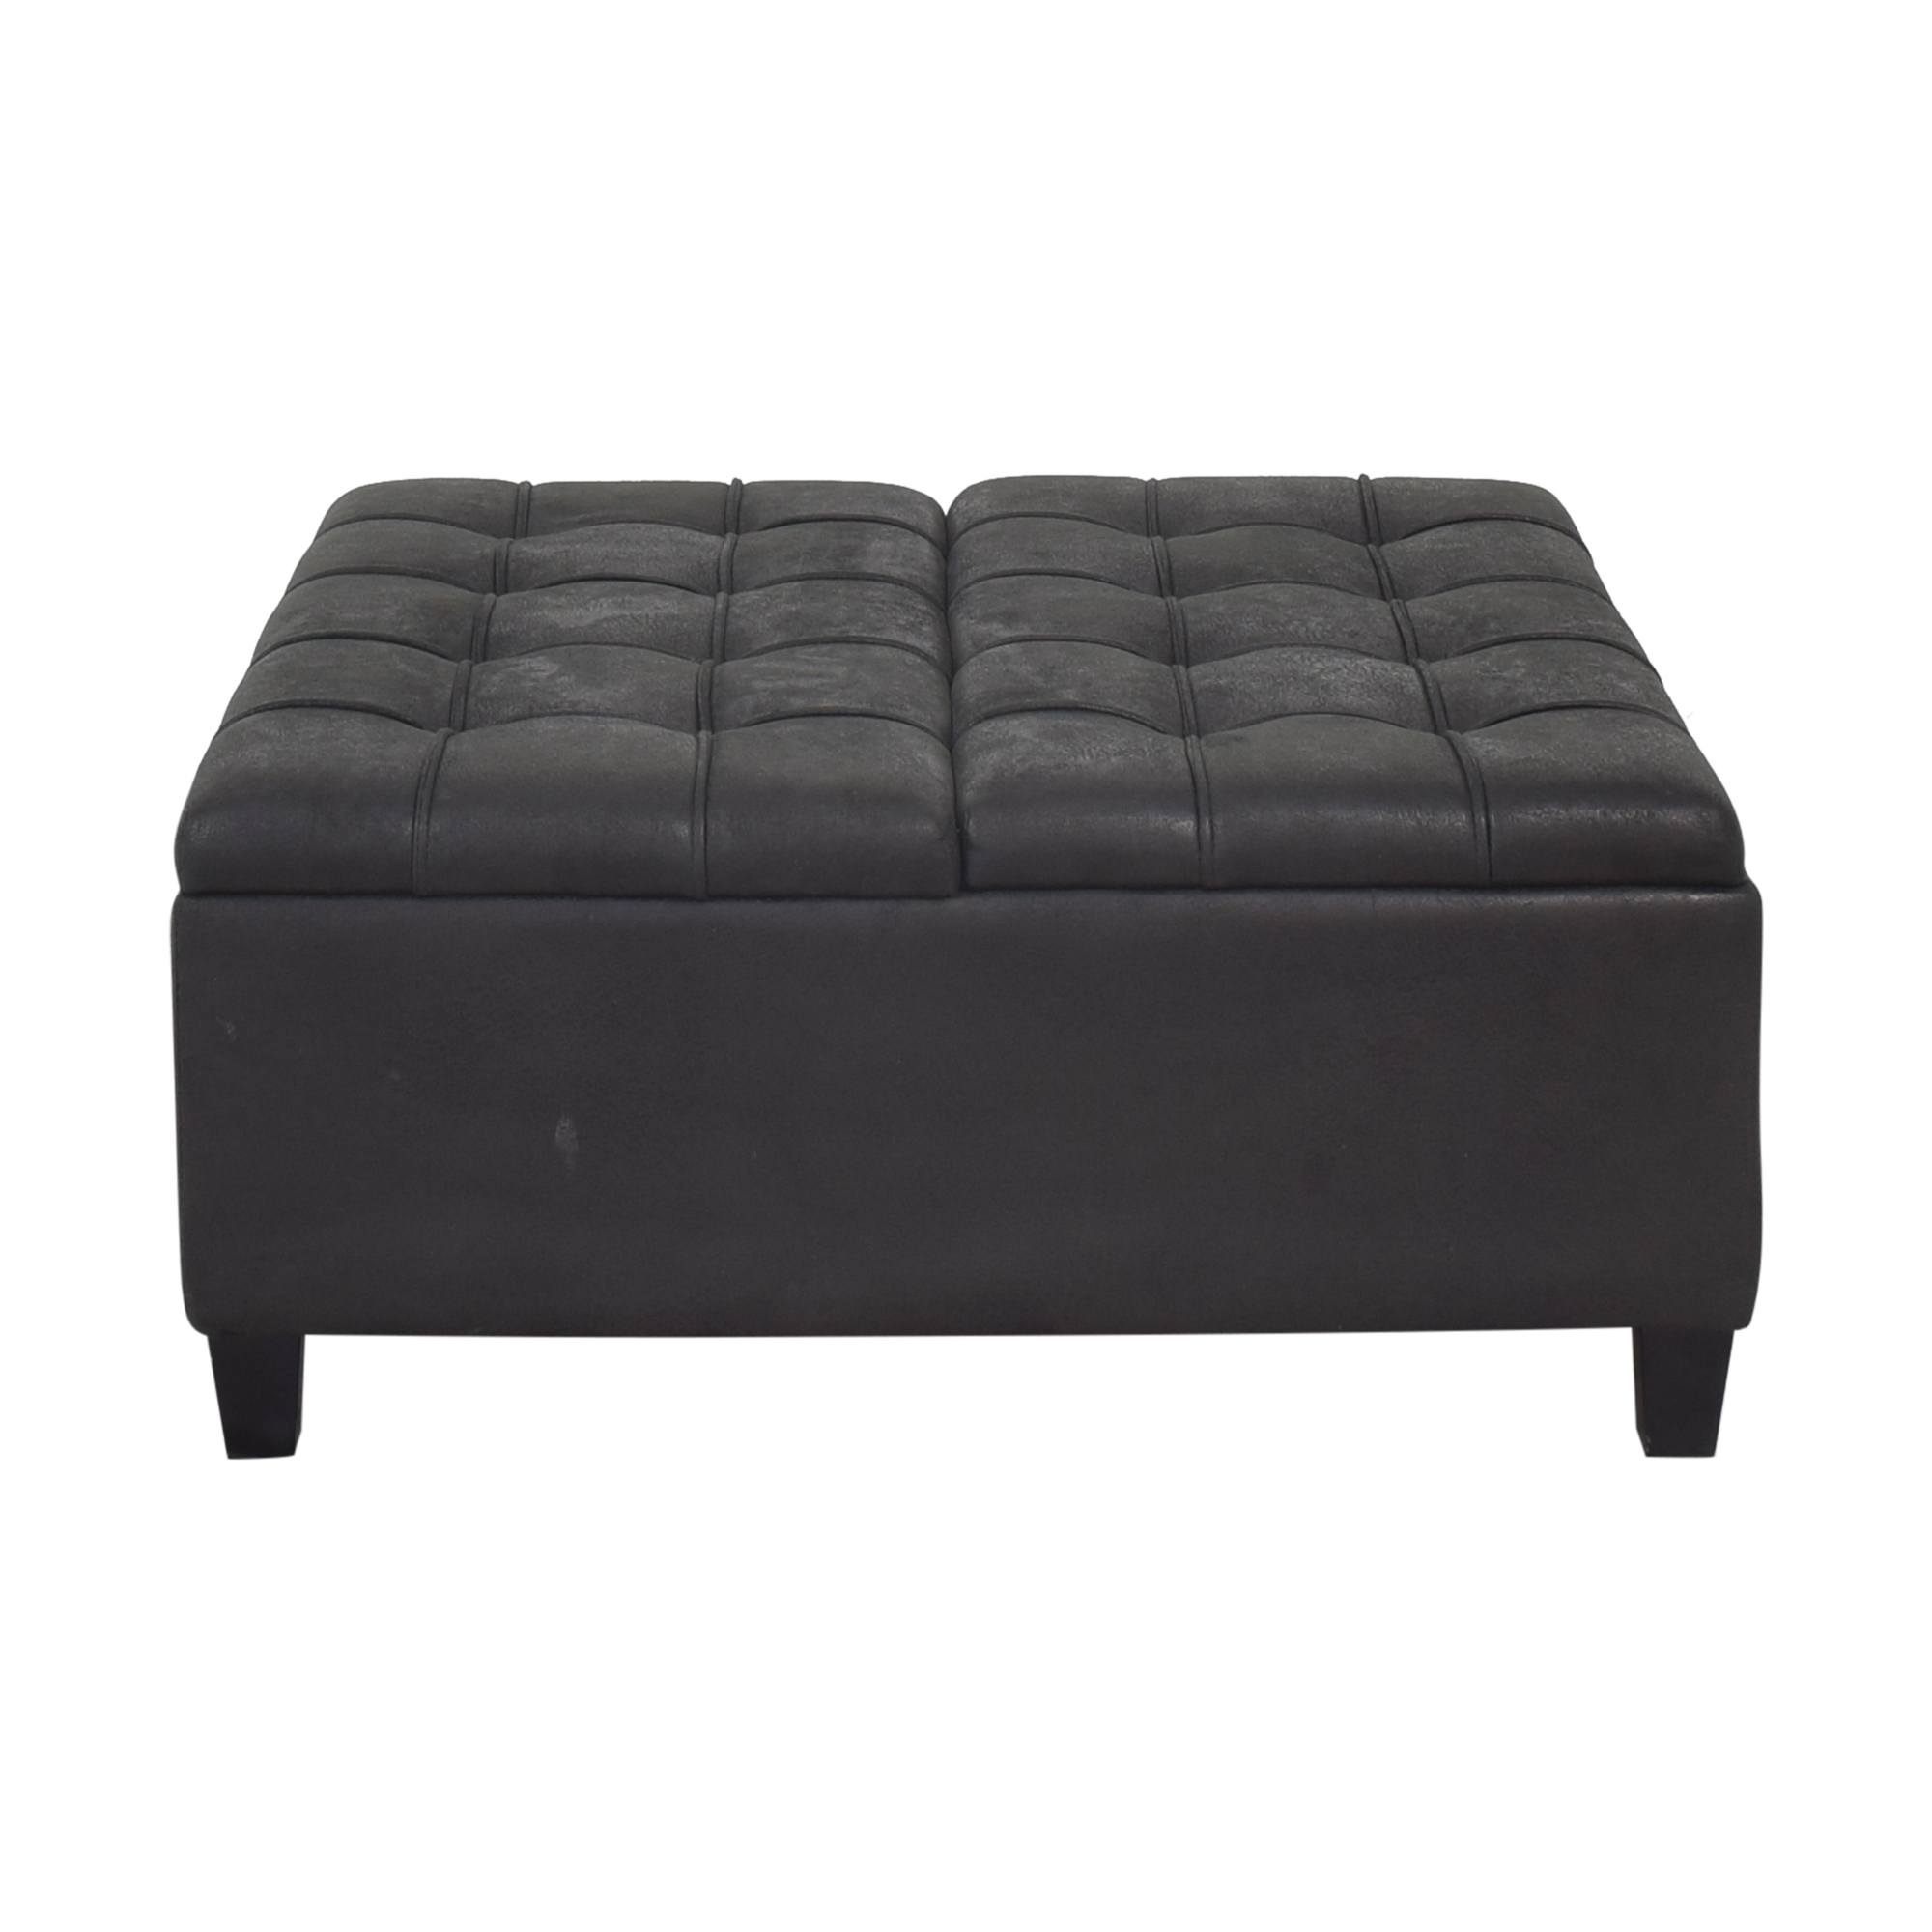 shop Macy's Macy's Simpli Home Harrison Coffee Table Storage Ottoman online